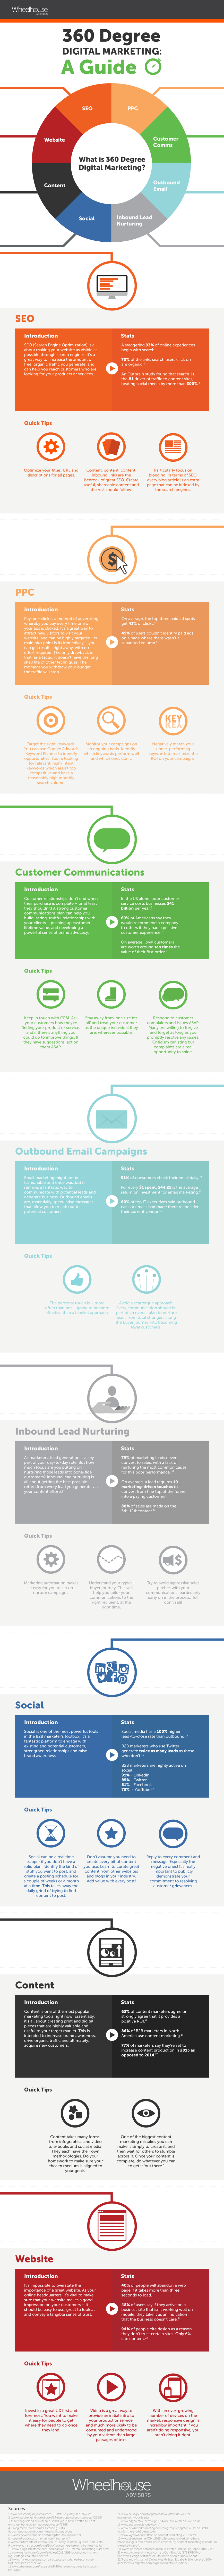 Infographic – 360 Degree Digital Marketing A Guide